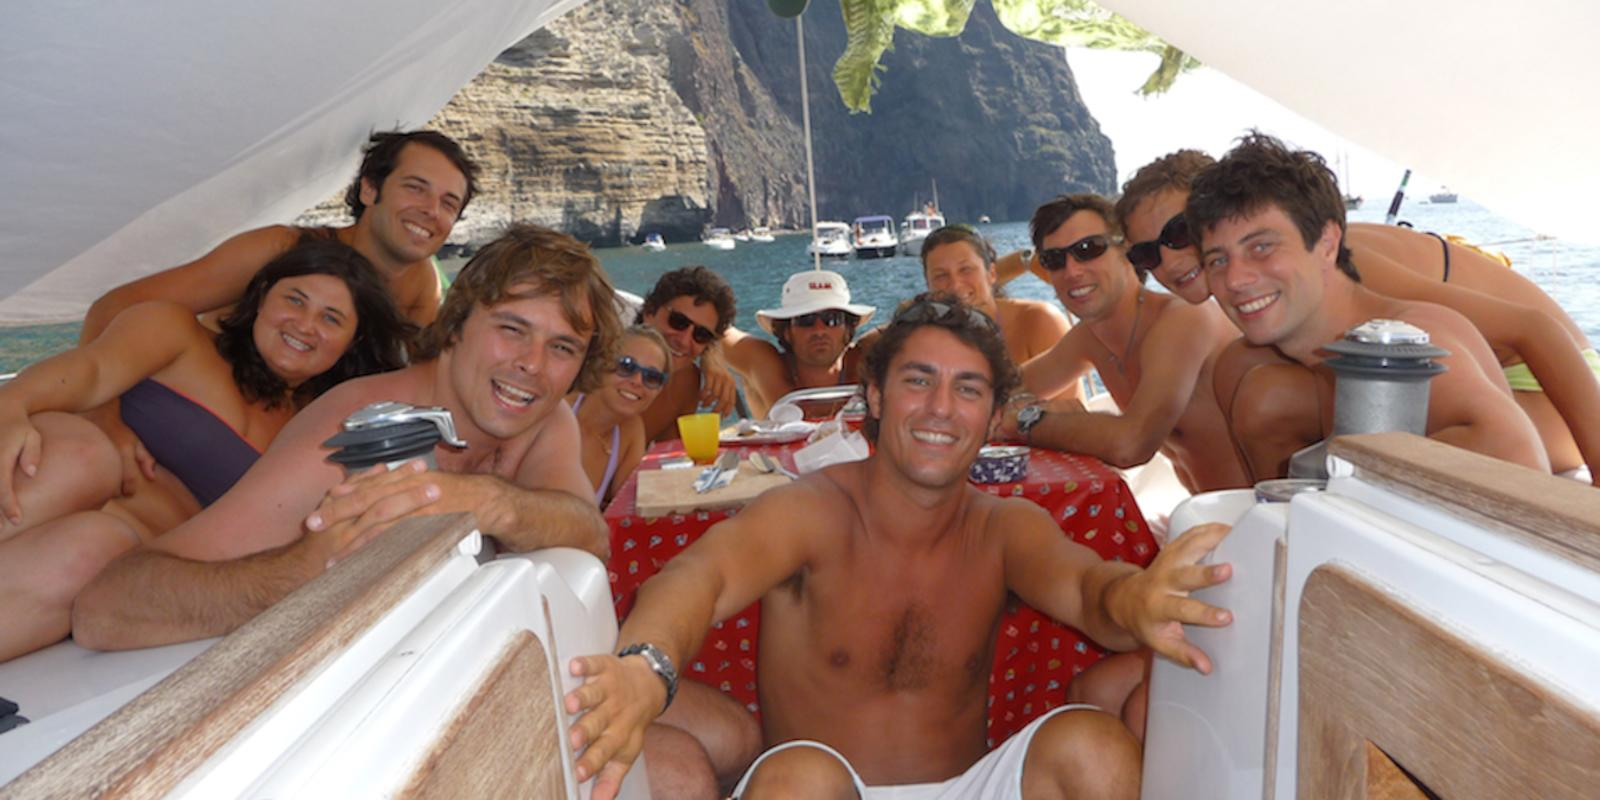 July how much I love you! - In flotilla with Gianluca C. -